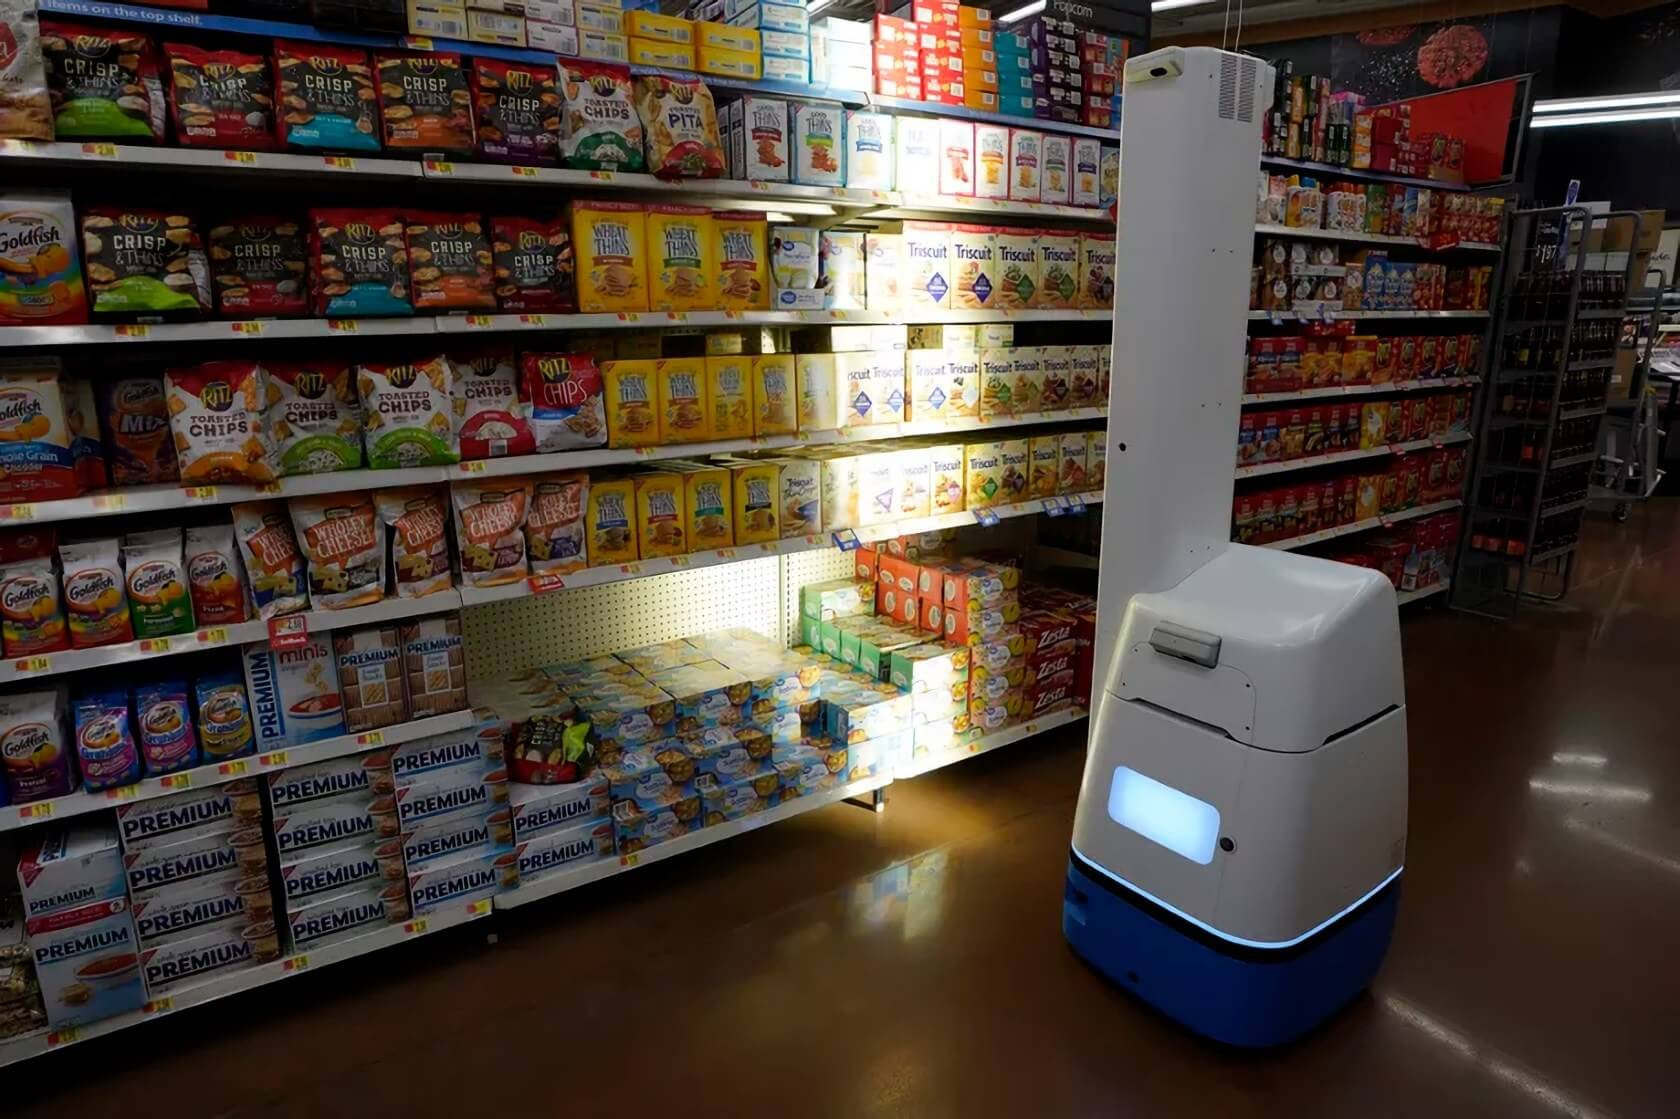 At Any Rate To Start With Walmart Will Be Bringing These New Robots 1500 Locations Throughout The US Given That Retail Chain Is Estimated Have